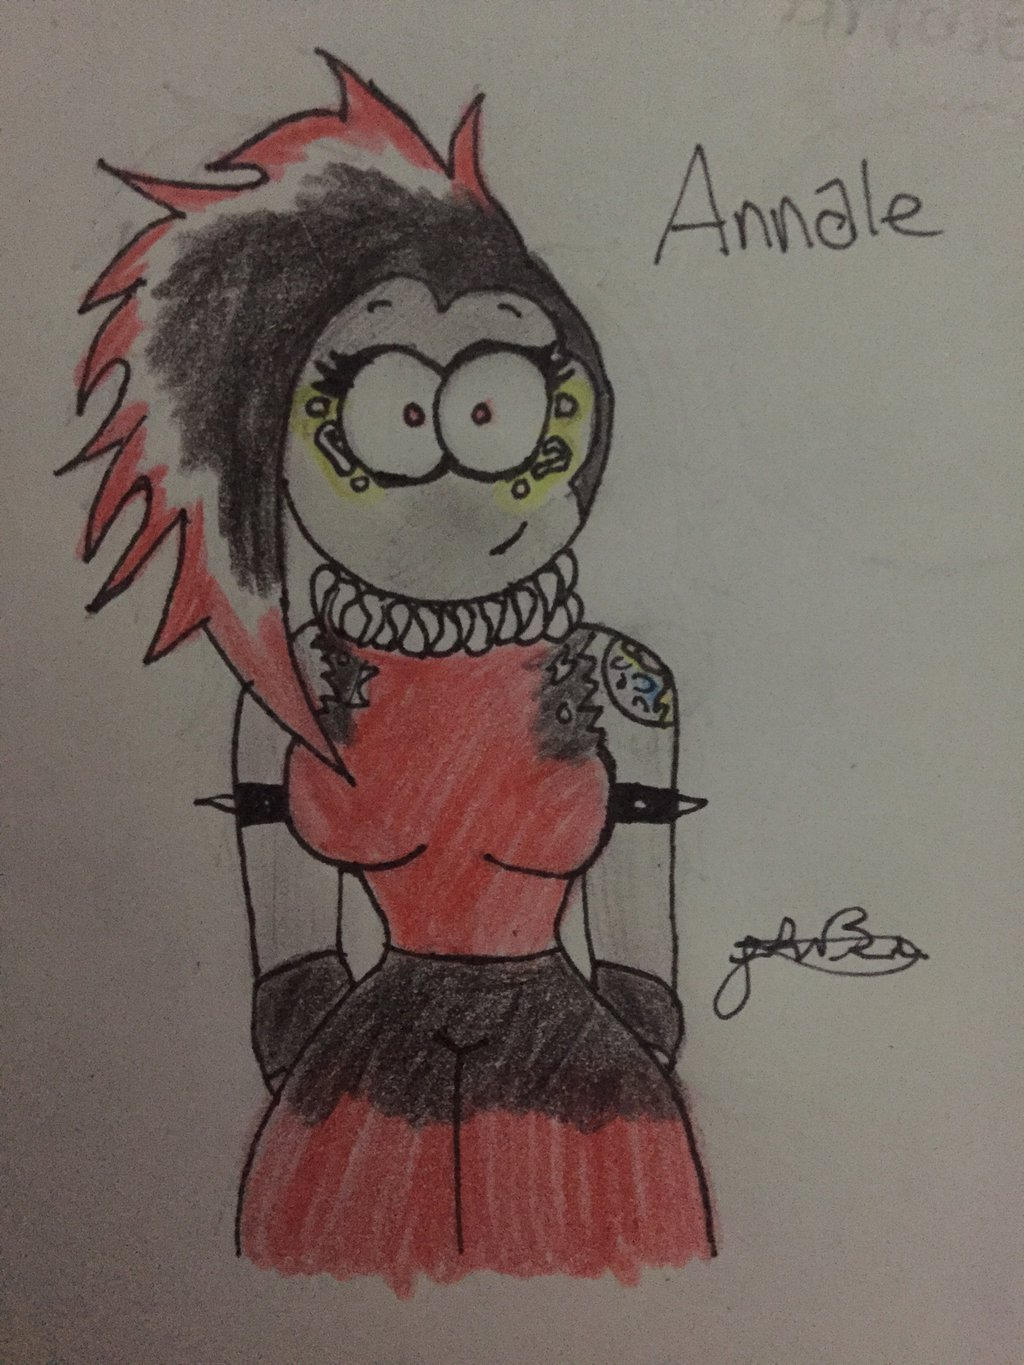 Annale daughter of Trauma and Luna by Lifeistrange